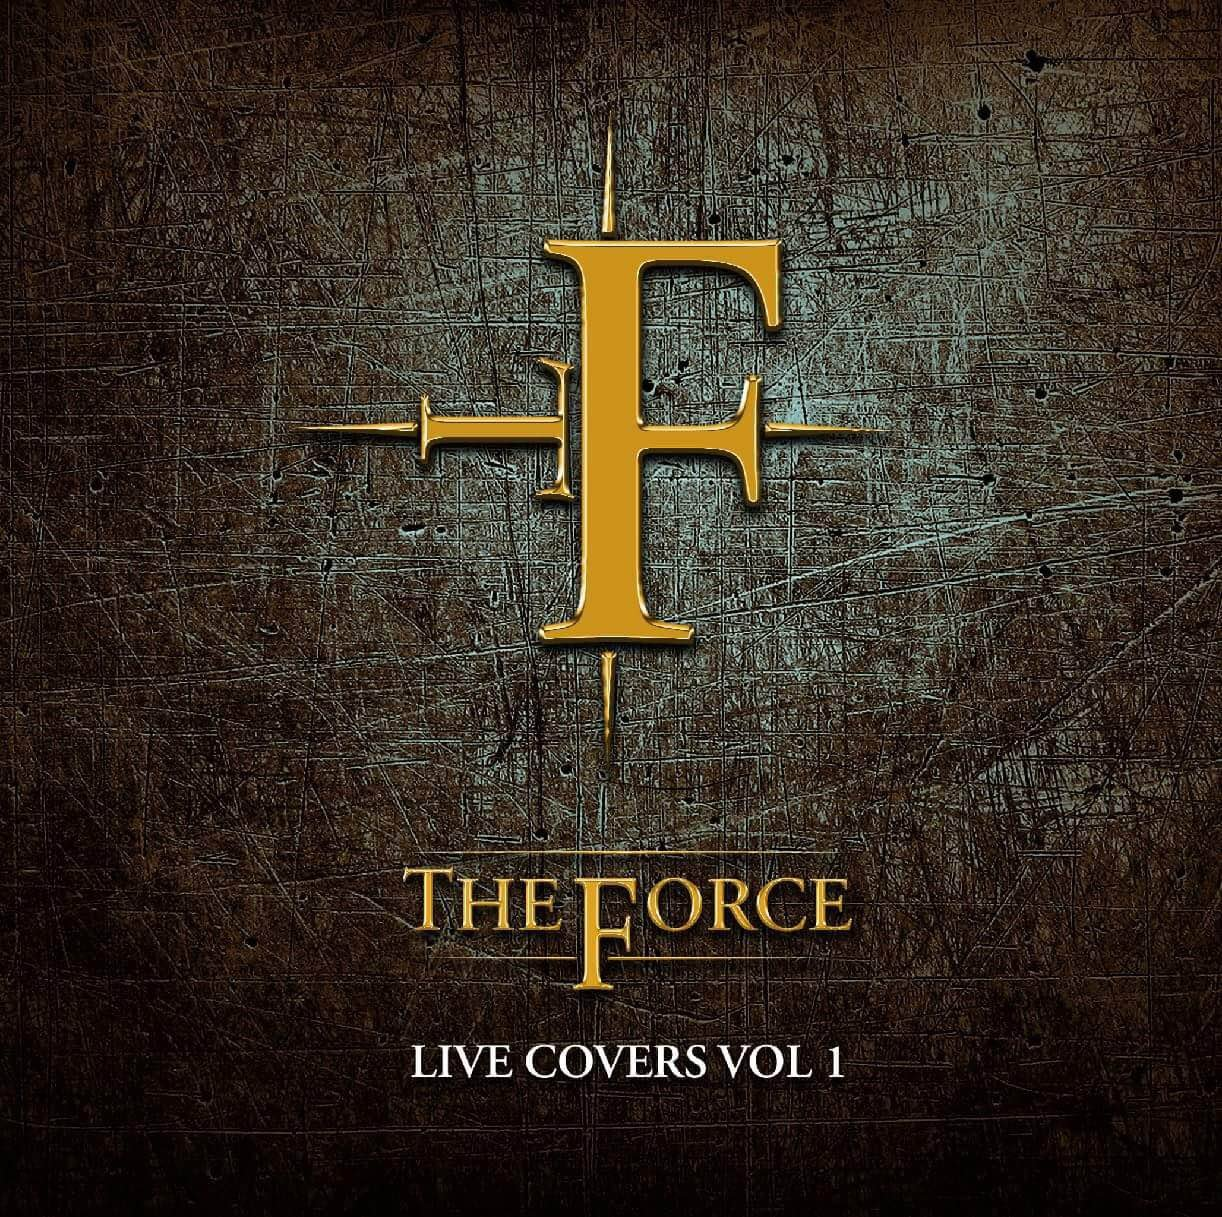 Live Covers Vol 1